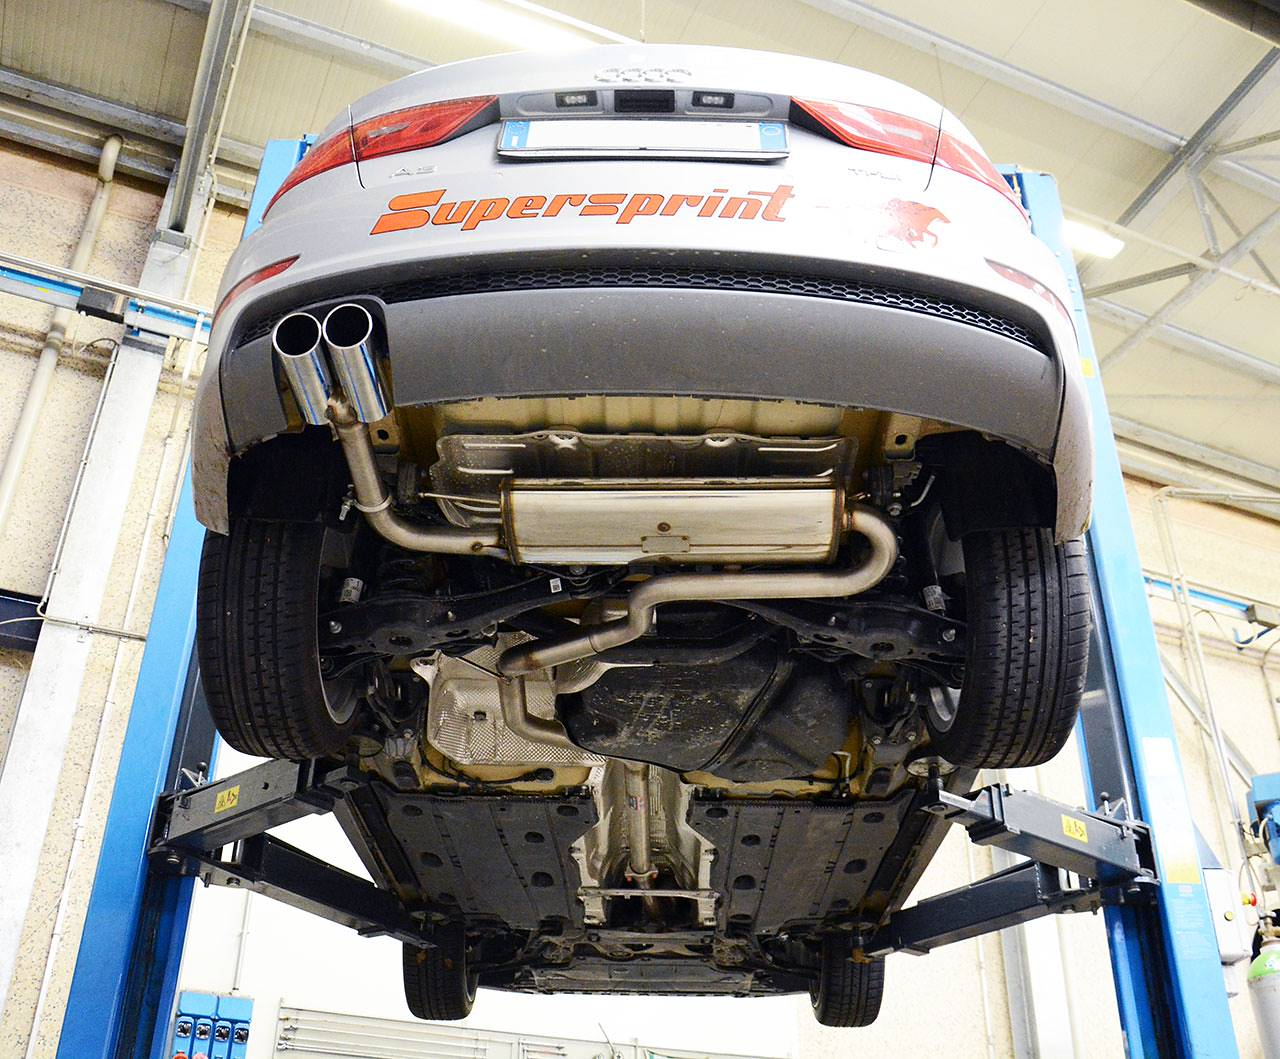 Supersprint sport exhaust 2 outputs with tailpipes 772816 and rear muffler 772804 for AUDI A3 8V Sedan 1.8 TFSI